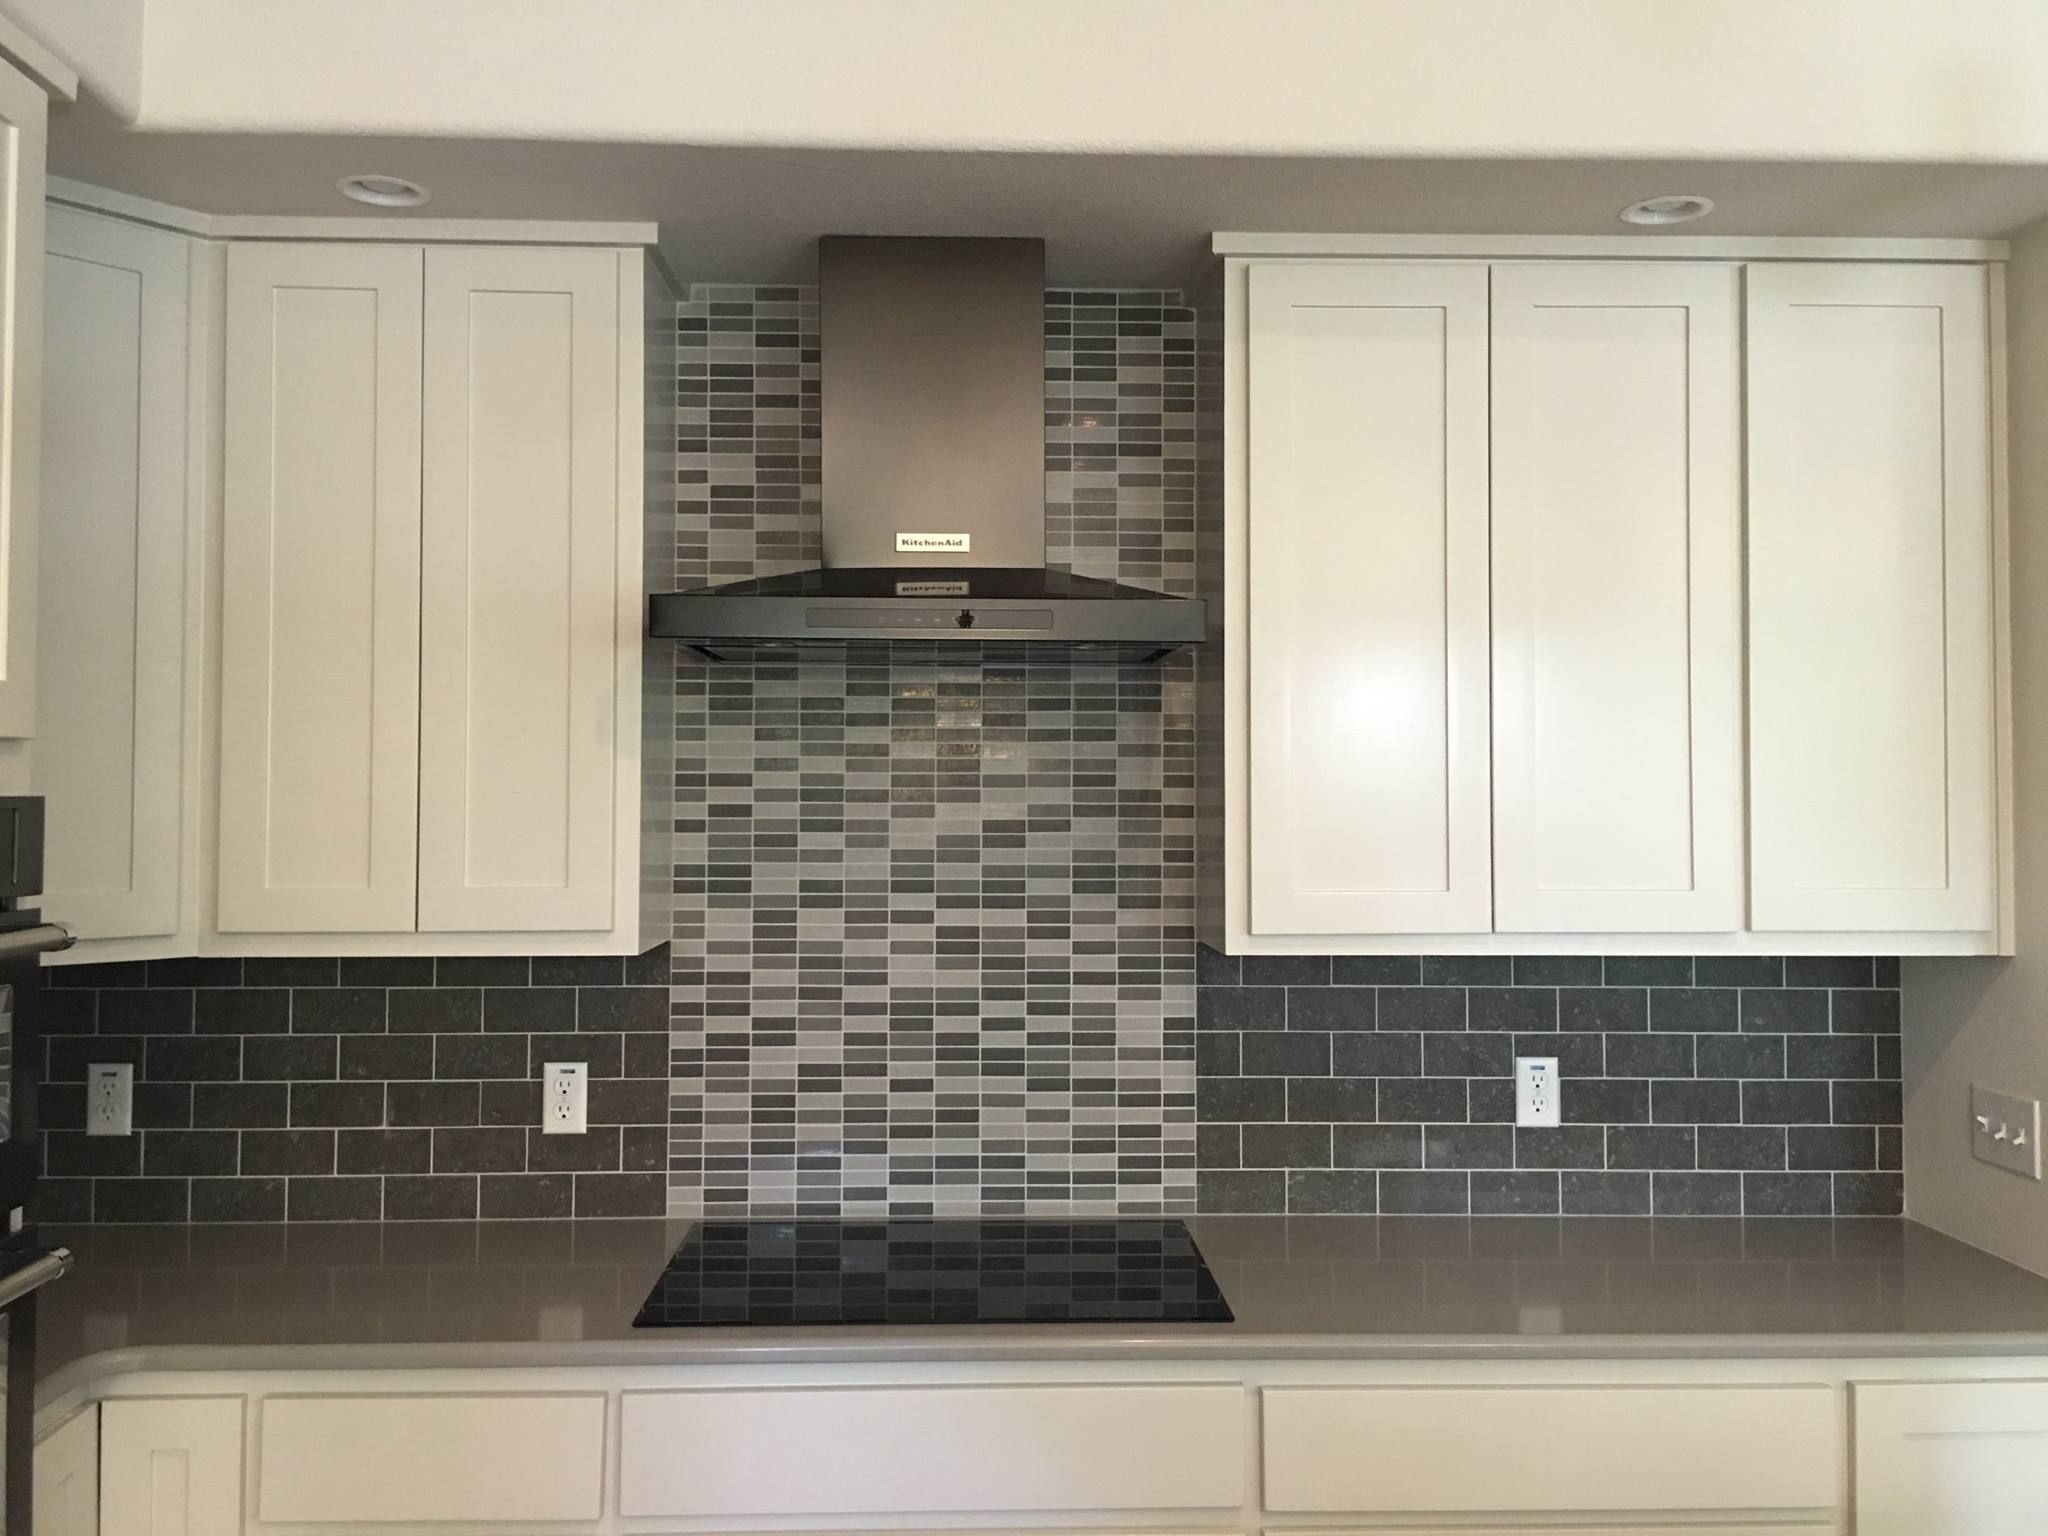 A custom built home in texas designed by brea ontiberoz of imagine a custom built home in texas designed by brea ontiberoz of imagine that design center in webster texas wall tiles are from crossvilles bluestone in dailygadgetfo Choice Image